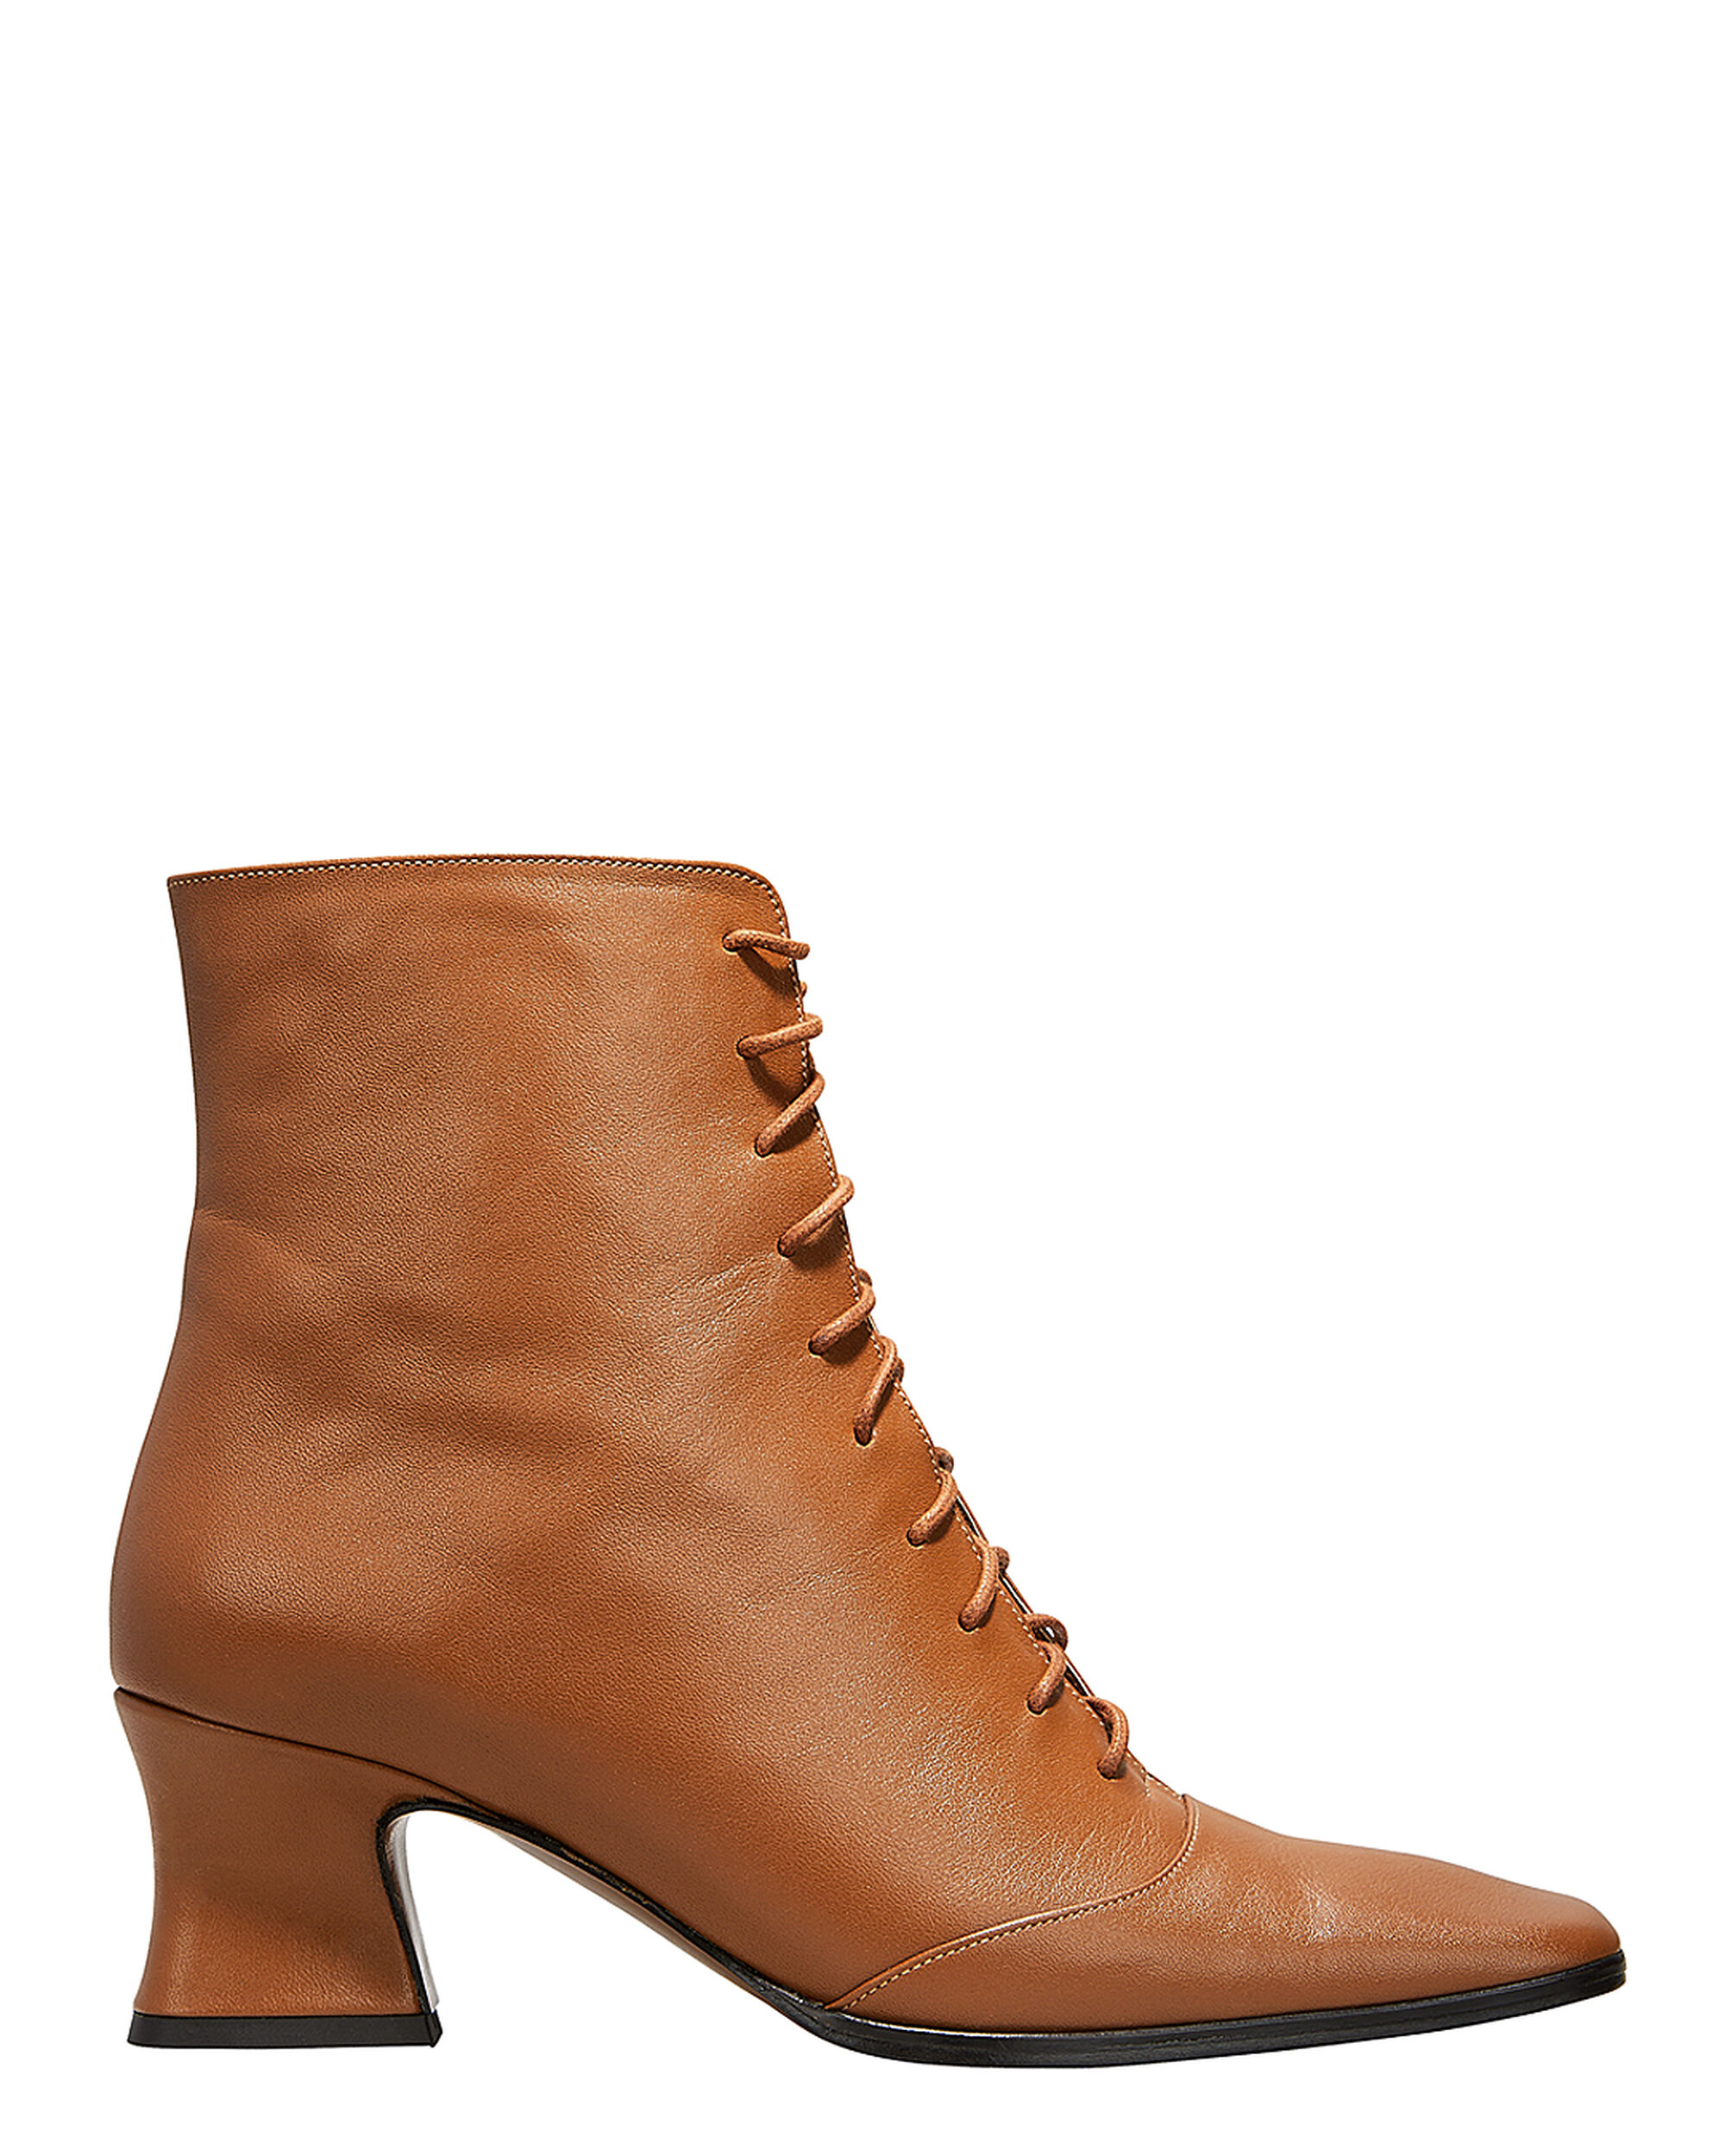 Kate Lace-Up Booties, BROWN, hi-res